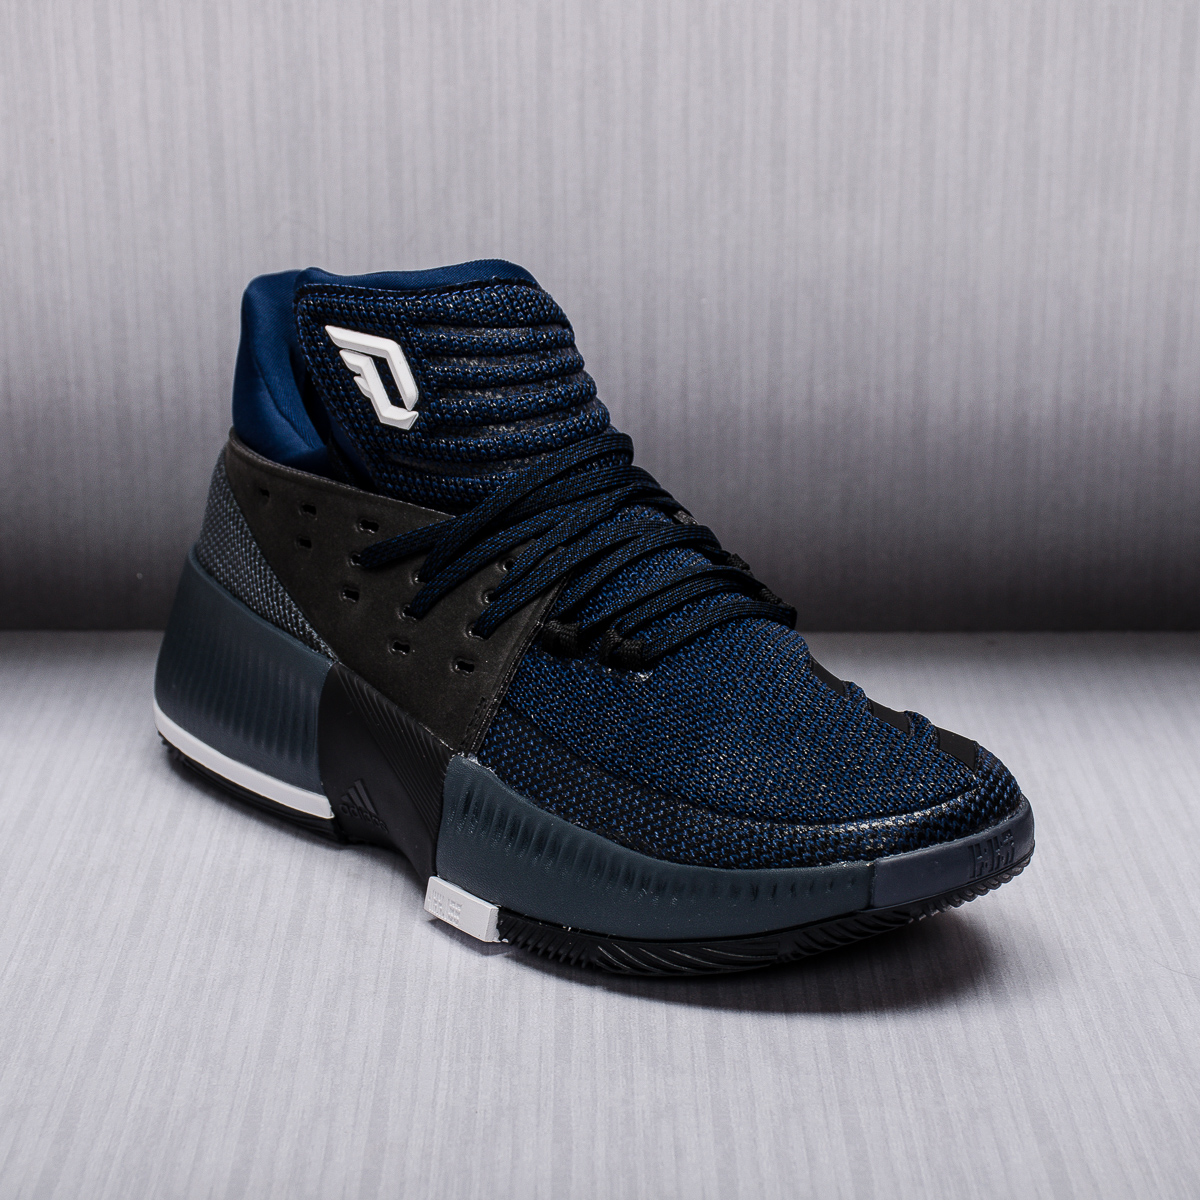 dame shoes adidas on sale   OFF74% Discounts 8ebd52b29